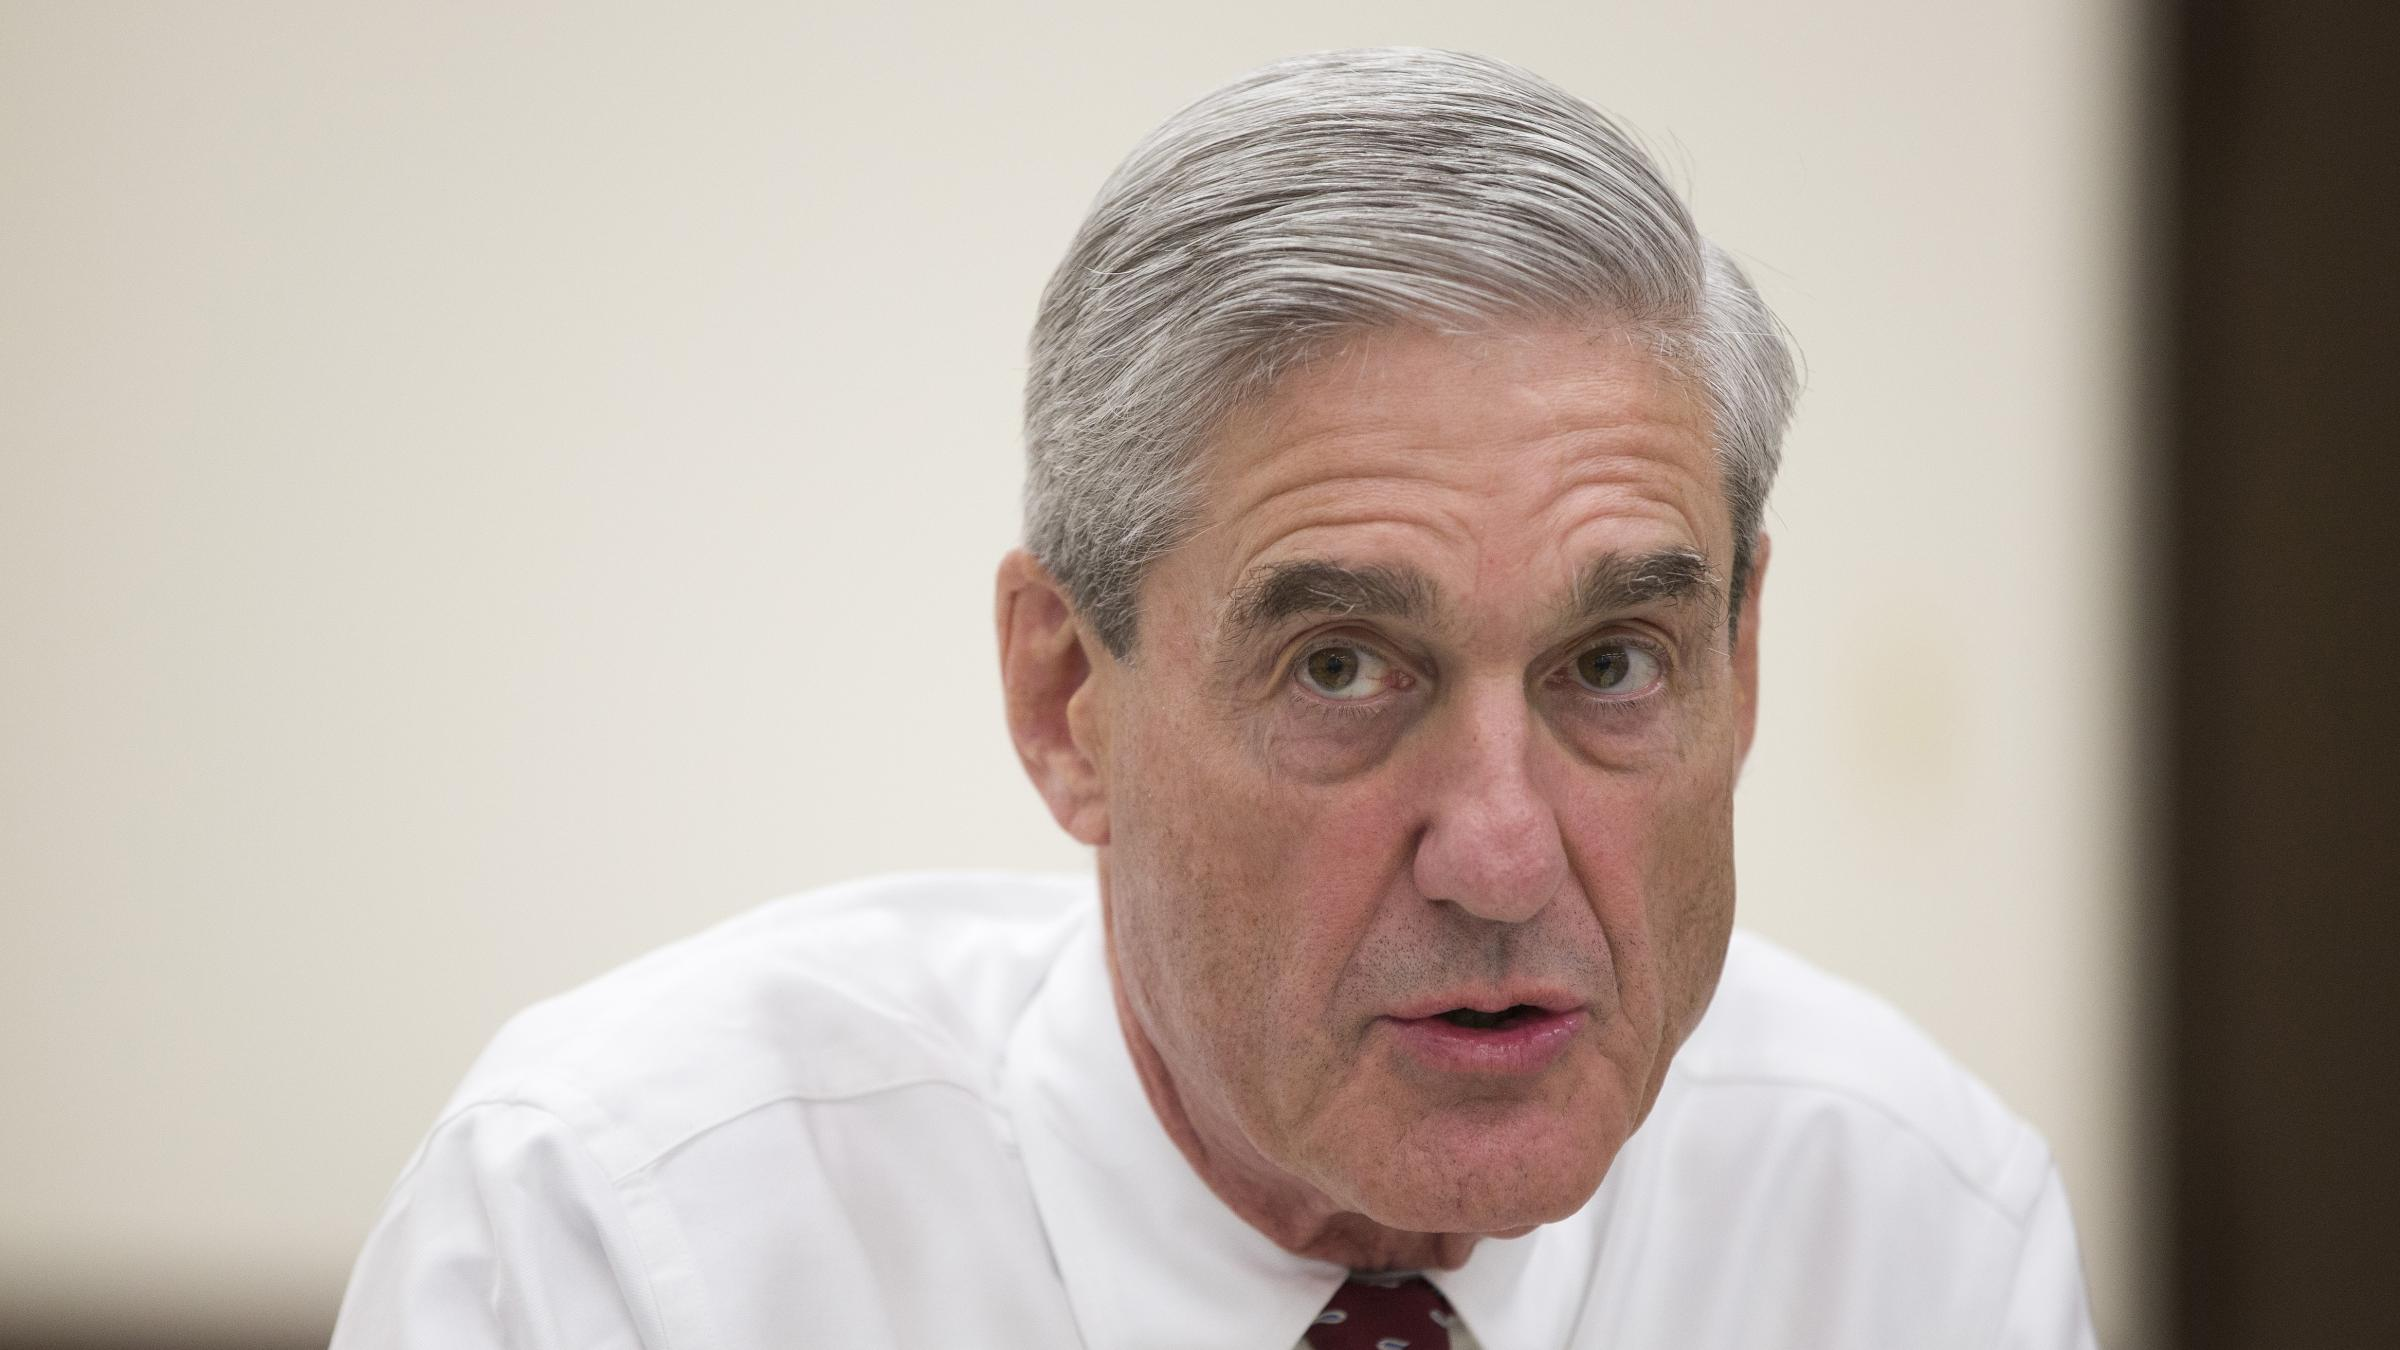 Trump supporters turn on special counsel Mueller